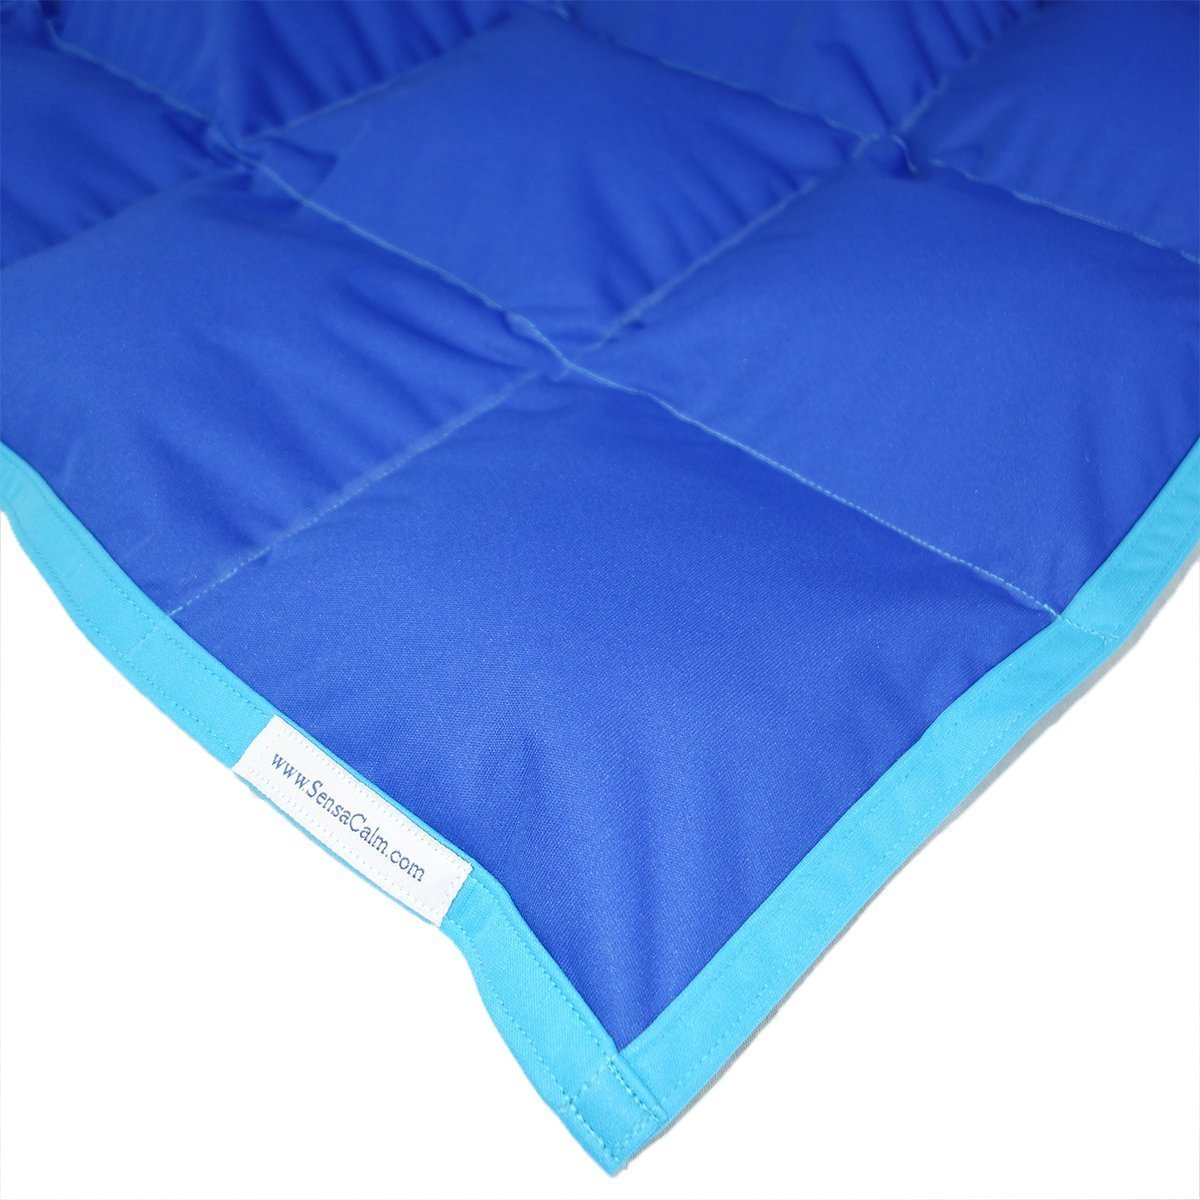 SensaCalm Royal Blue w/ Turquoise - Adult 18 lb Weighted Waterproof Blanket